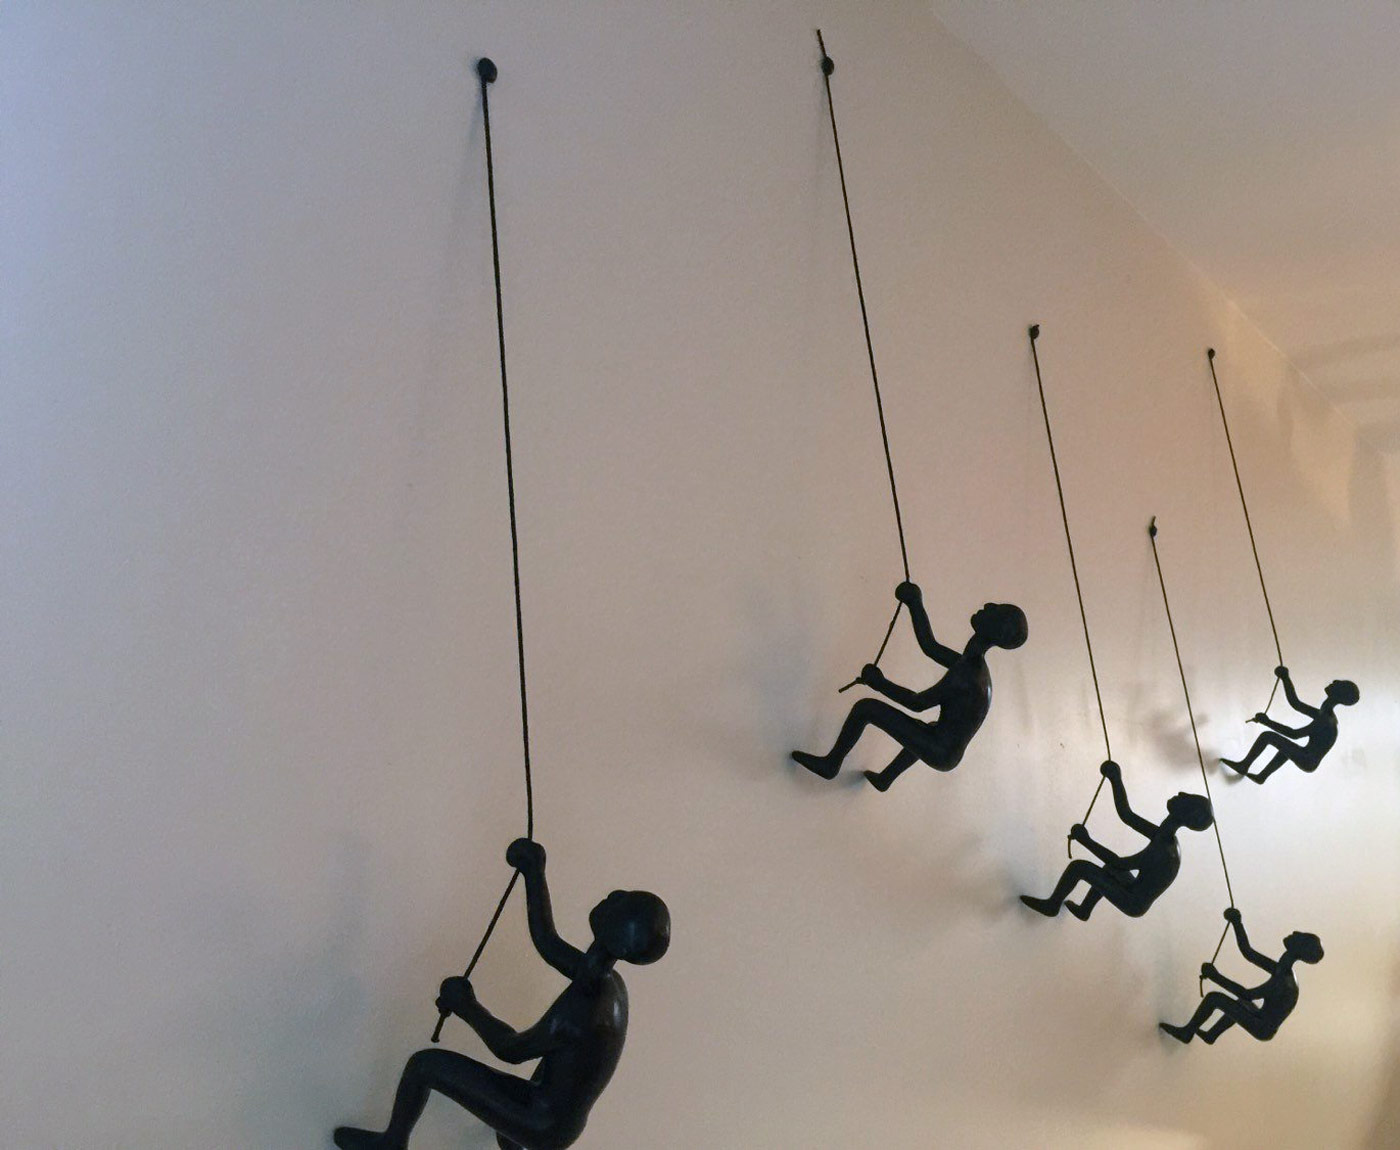 Little Wall Mounted Rock Climber Sculptures